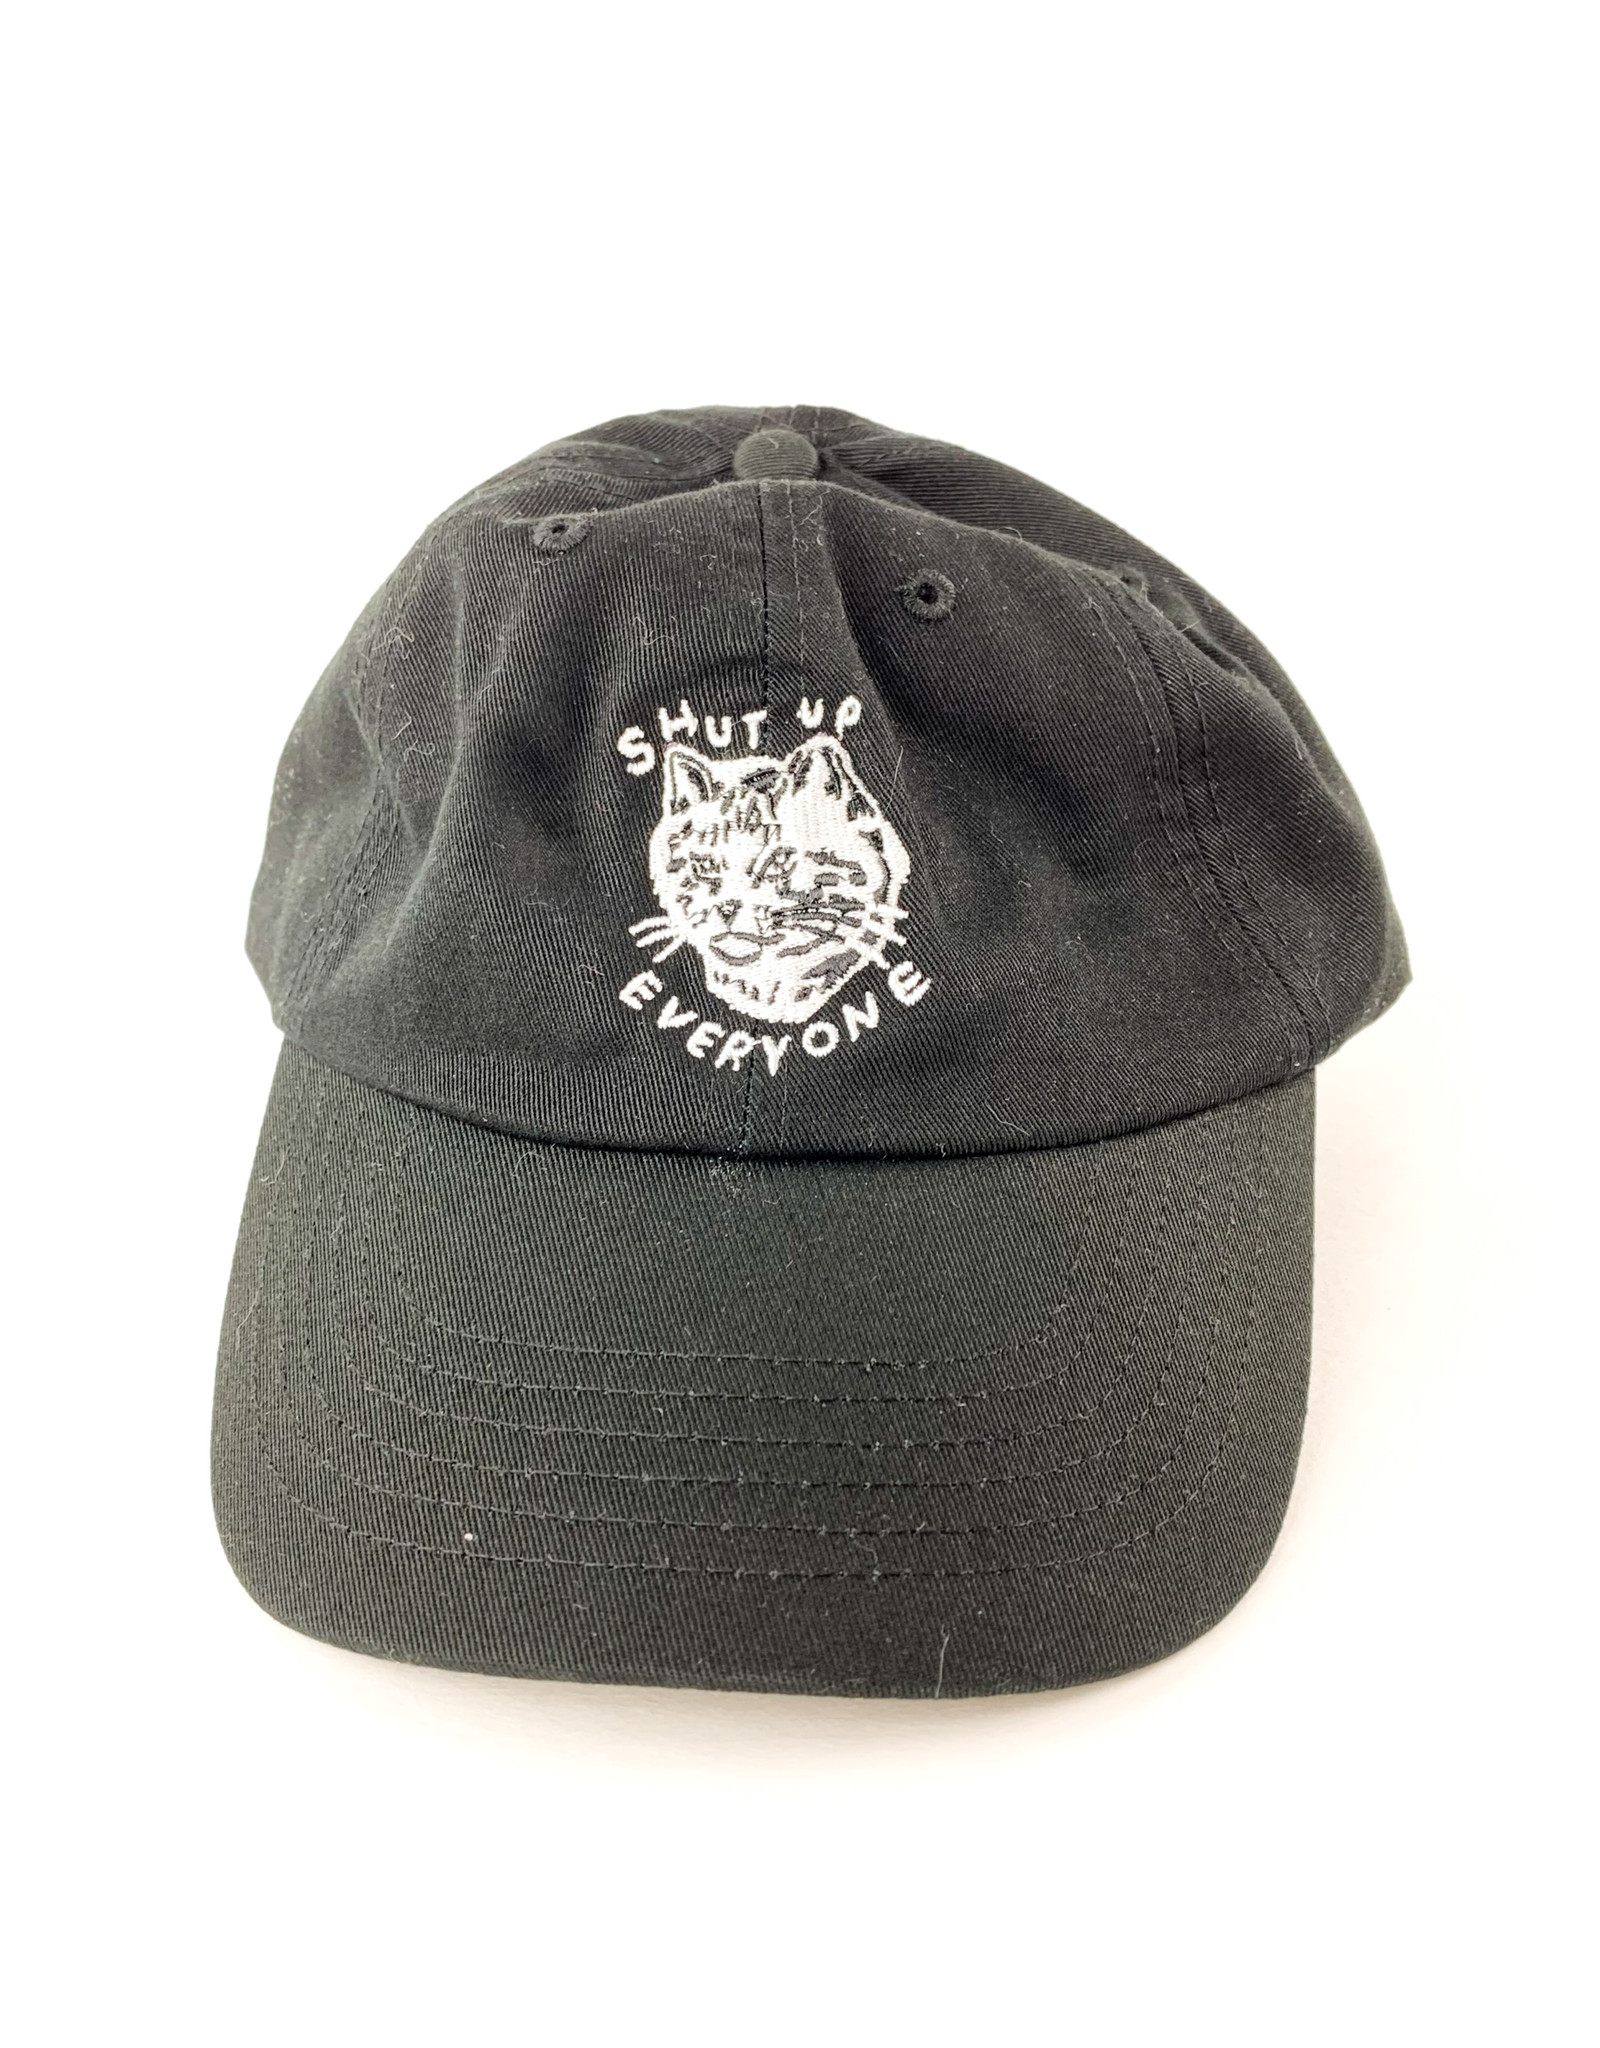 Stay Home Club Shut Up Everyone Dad Hat